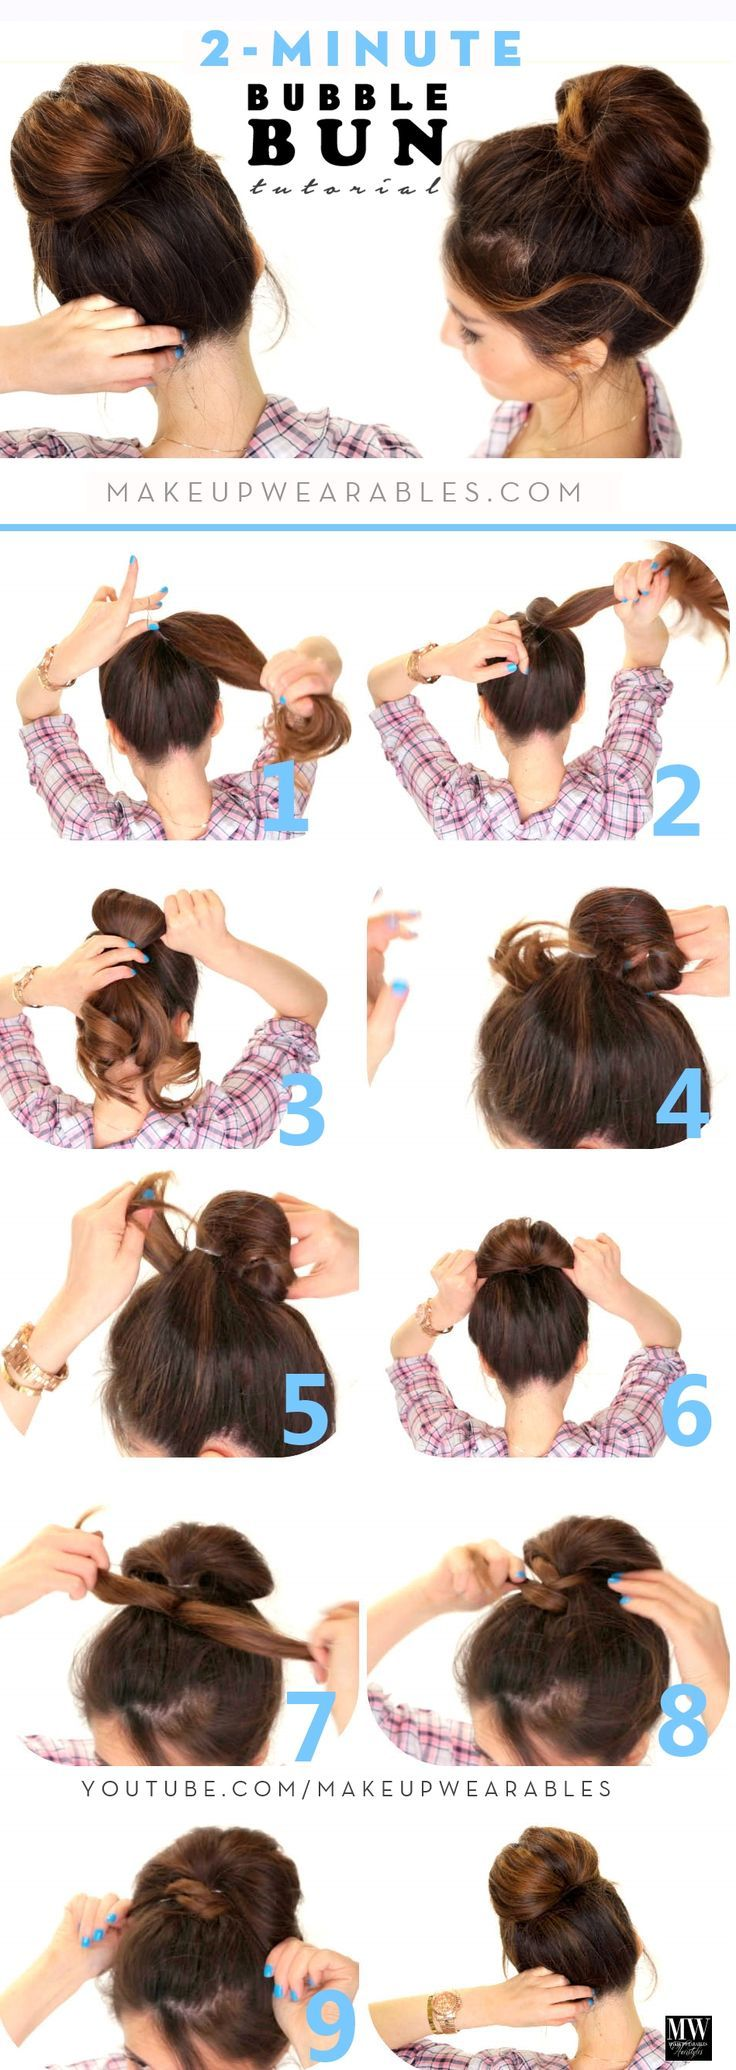 14 Simple Hair Bun Tutorial To Keep You Look Chic In Lazy Days Be Modish Hair Styles Hair Bun Tutorial Easy Bun Hairstyles